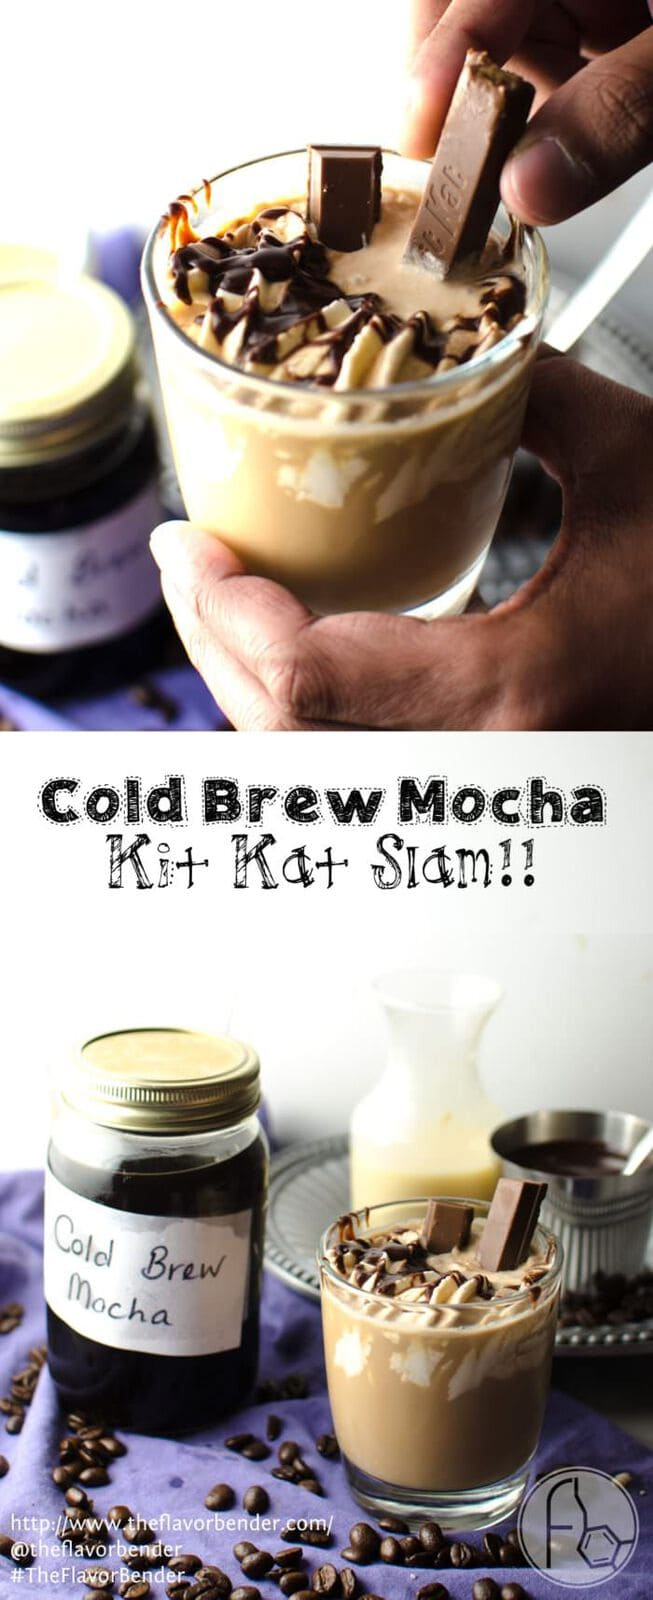 Cold Brew Iced Mocha - Learn how to make Cold Brew Mocha and Cold Brew Coffee and How to drink a KIT KAT SLAM! Absolutely perfect for Summer (Or anytime!) Kit Kats will never be the same again! Make your own Kit Kat Slam and tag it #TFBKitKatSlam! #TheFlavorBender CLICK to get the recipe. REPIN to save for later.